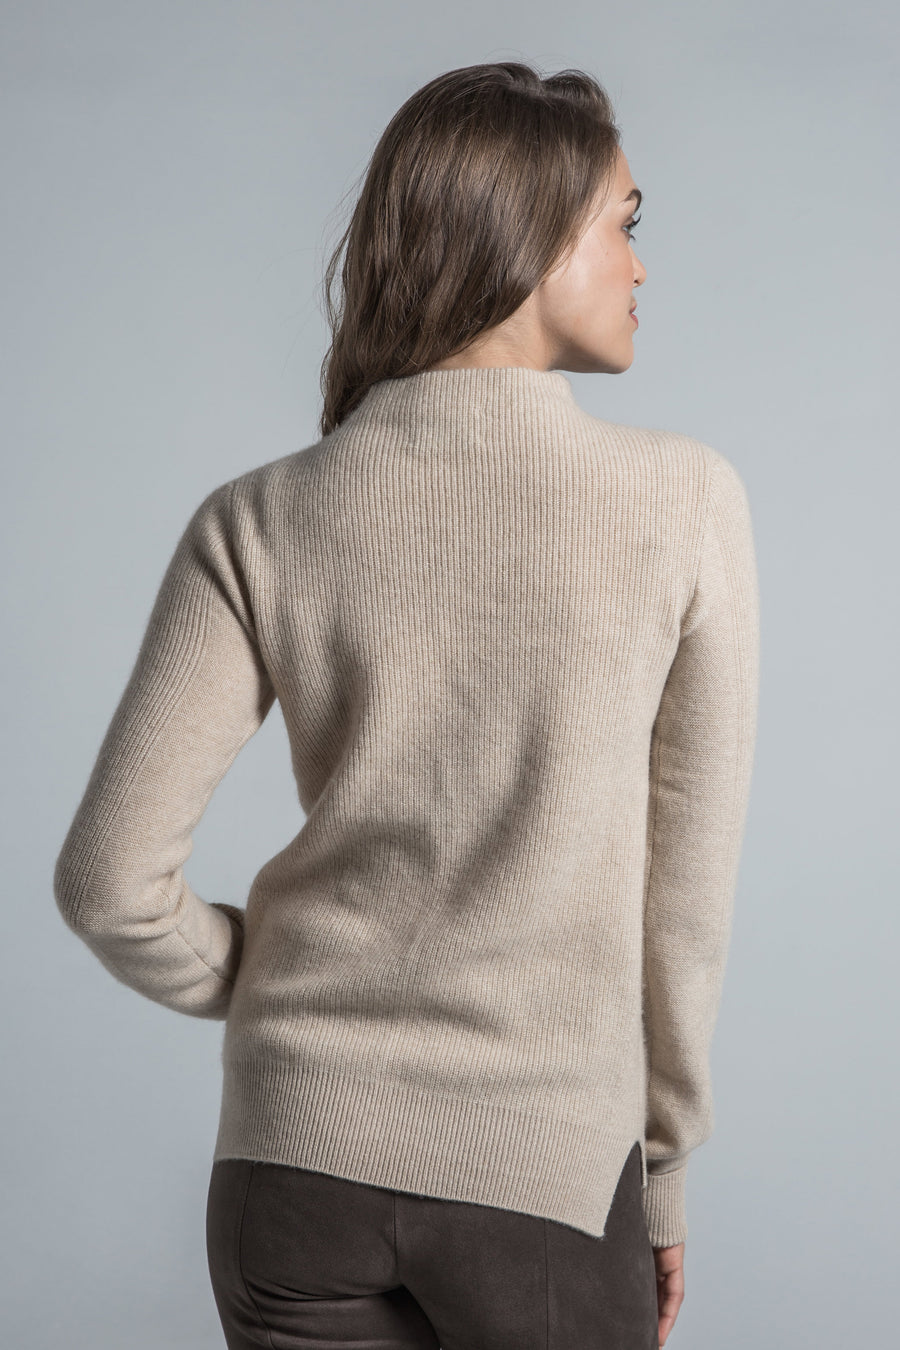 pine cashmere women's leah high mock neck 100% pure organic cashmere sweater in tan